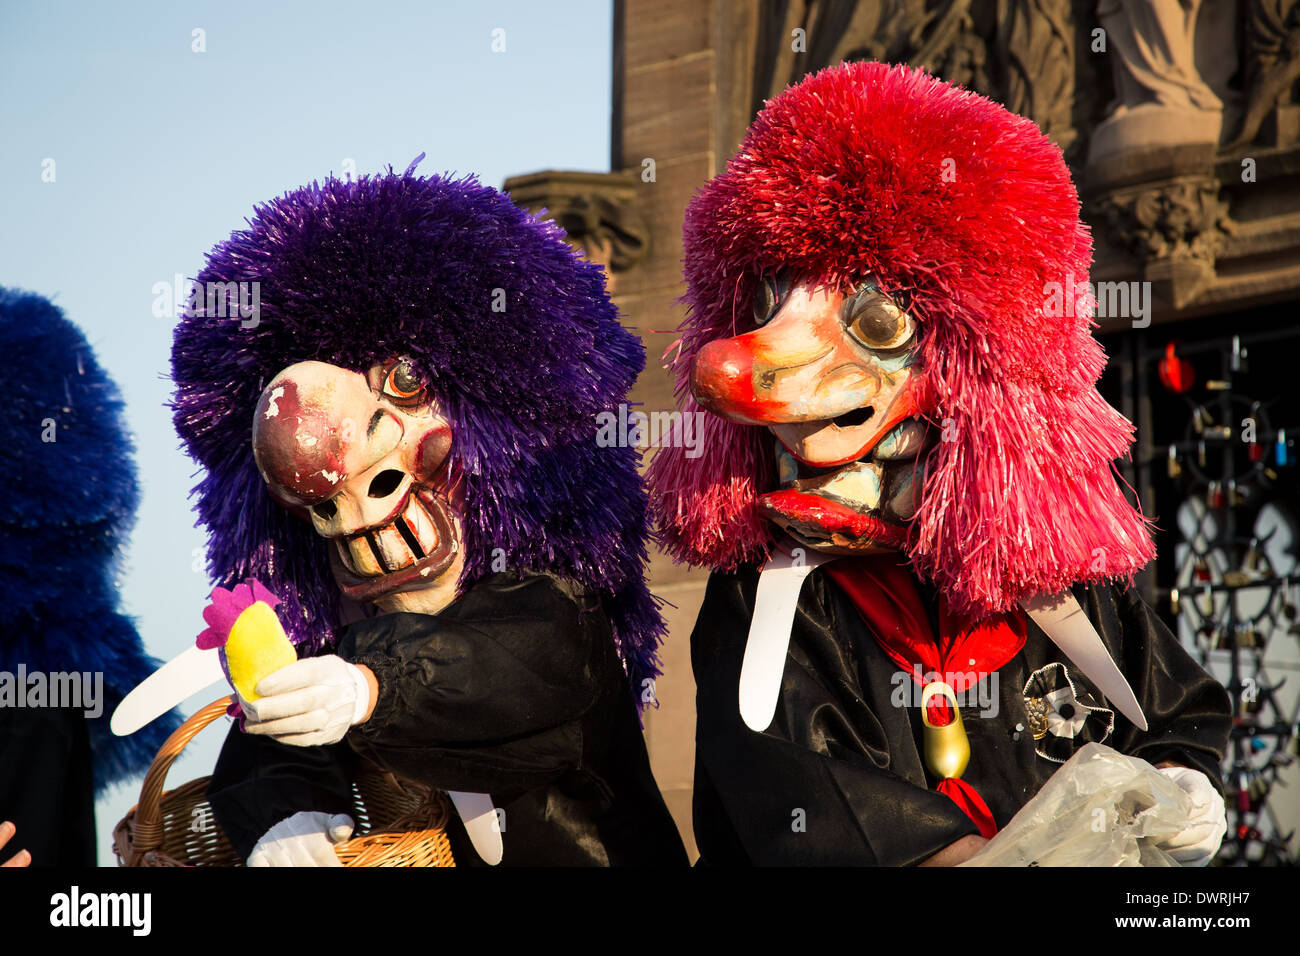 Two Waggis at the parade of the Basler Fasnacht in Switzerland. - Stock Image